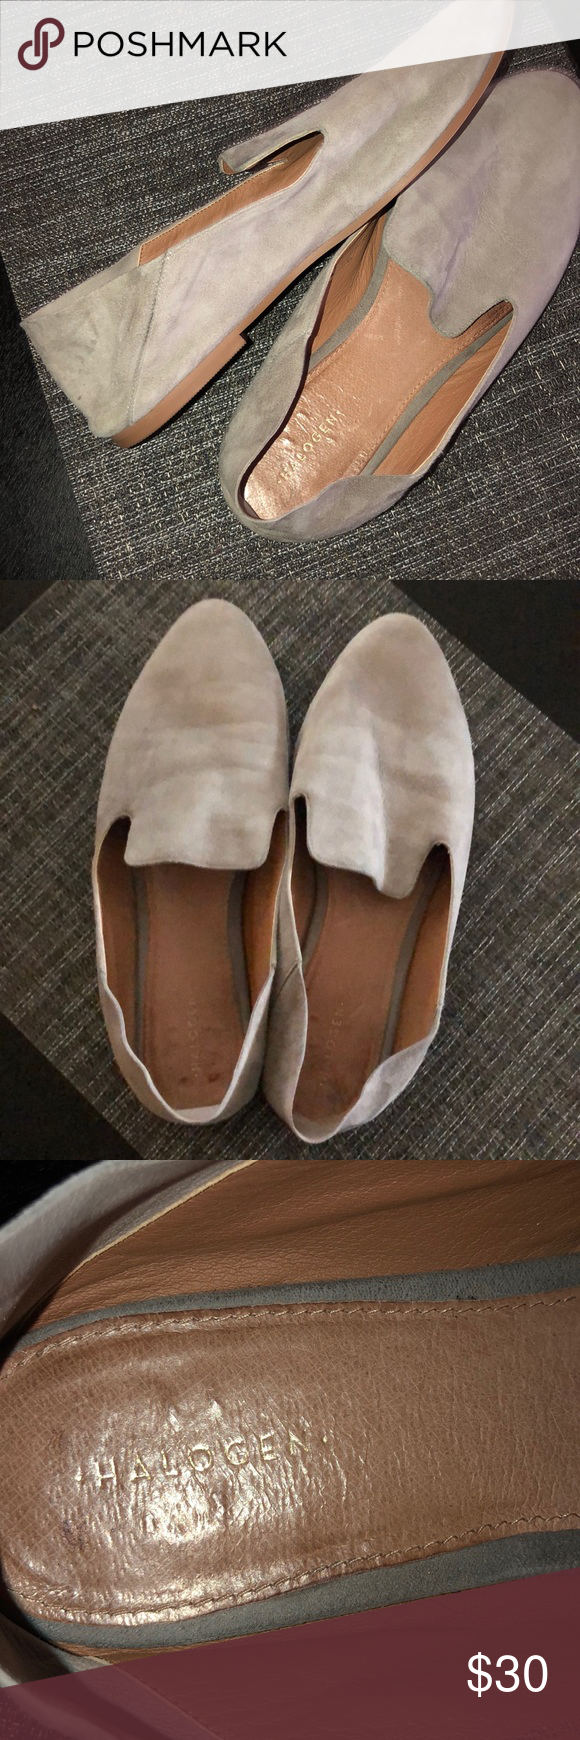 91e5a32b915 Halogen shoes 8.5 These are used but in very good condition Halogen Shoes  Flats   Loafers